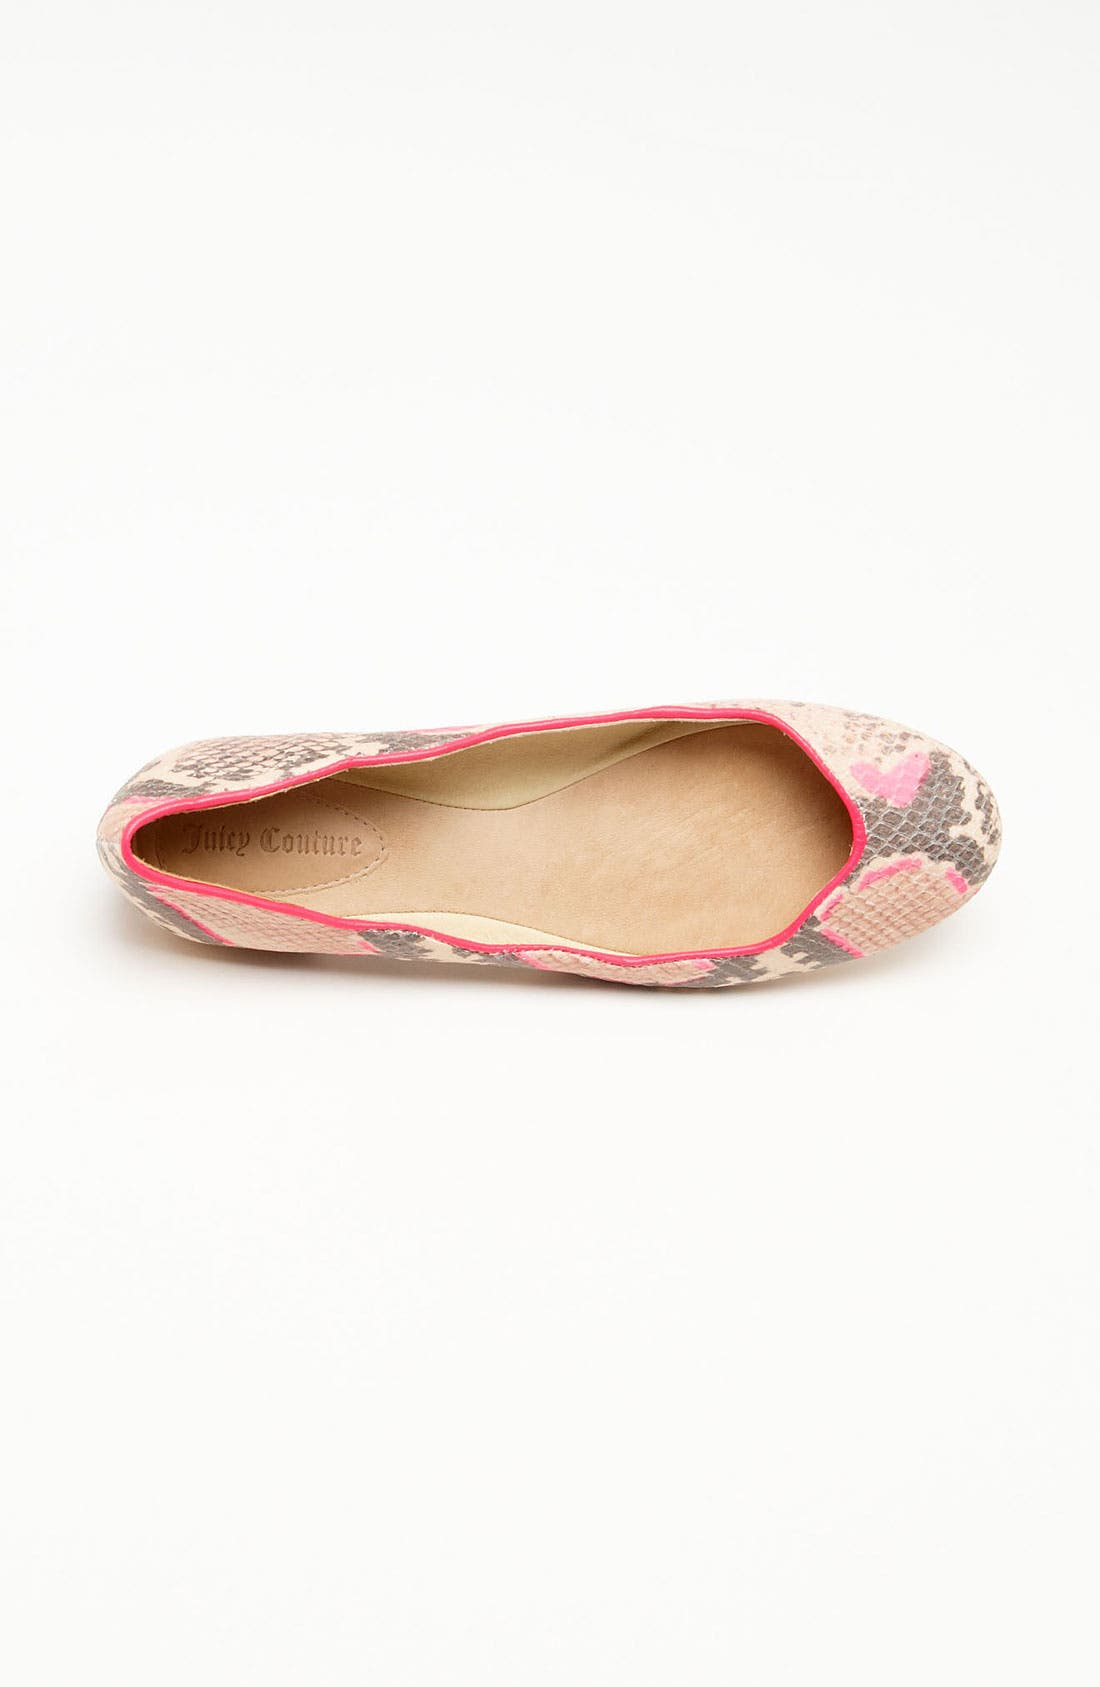 Alternate Image 3  - Juicy Couture 'Jailyn' Flat